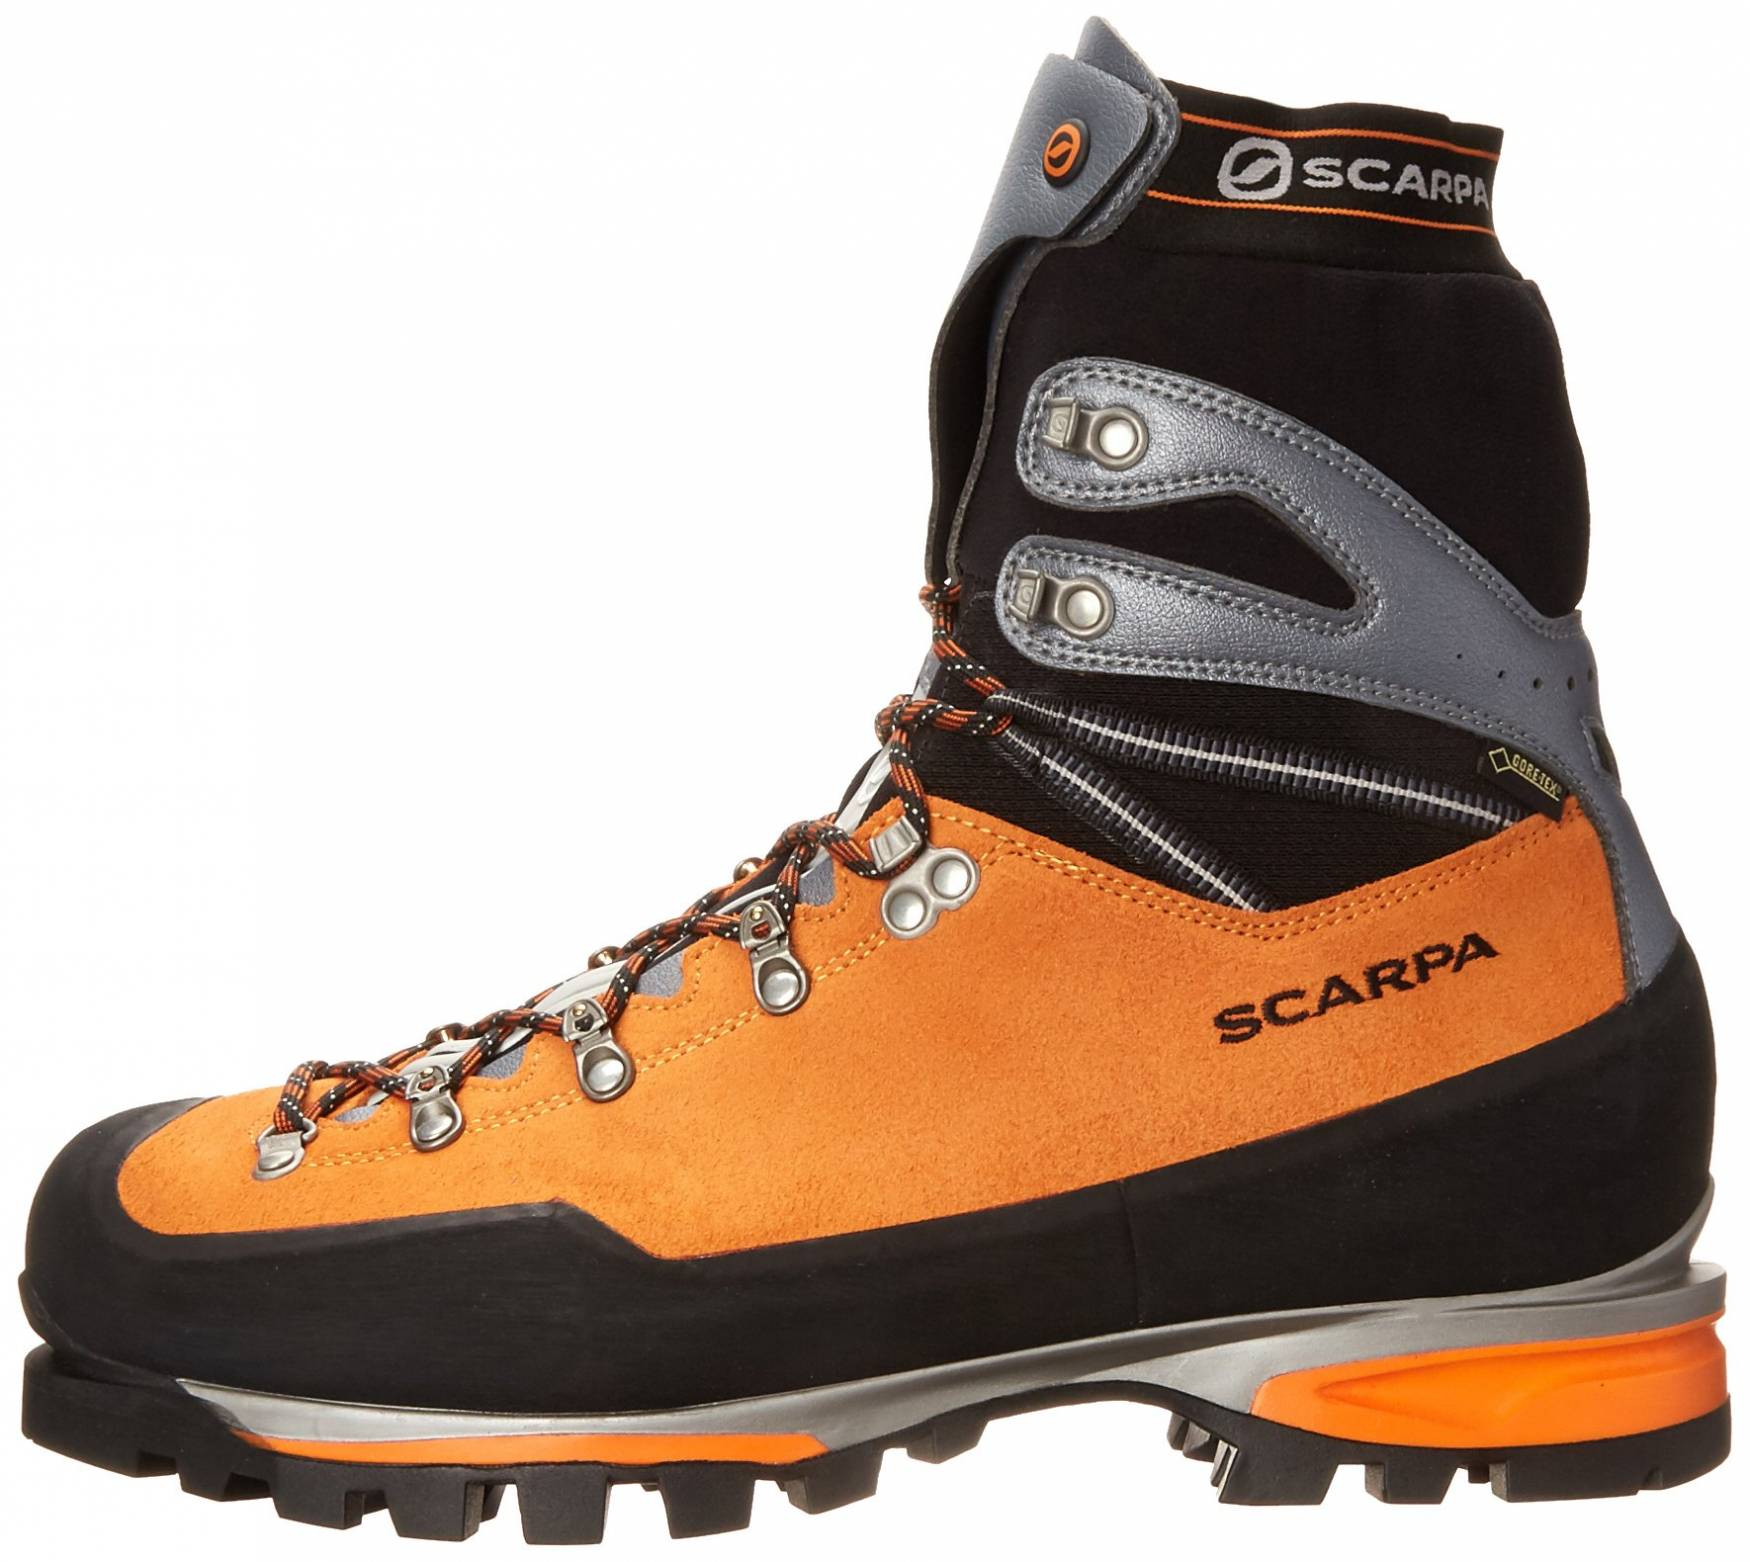 Save 29% on Mountaineering Boots (86